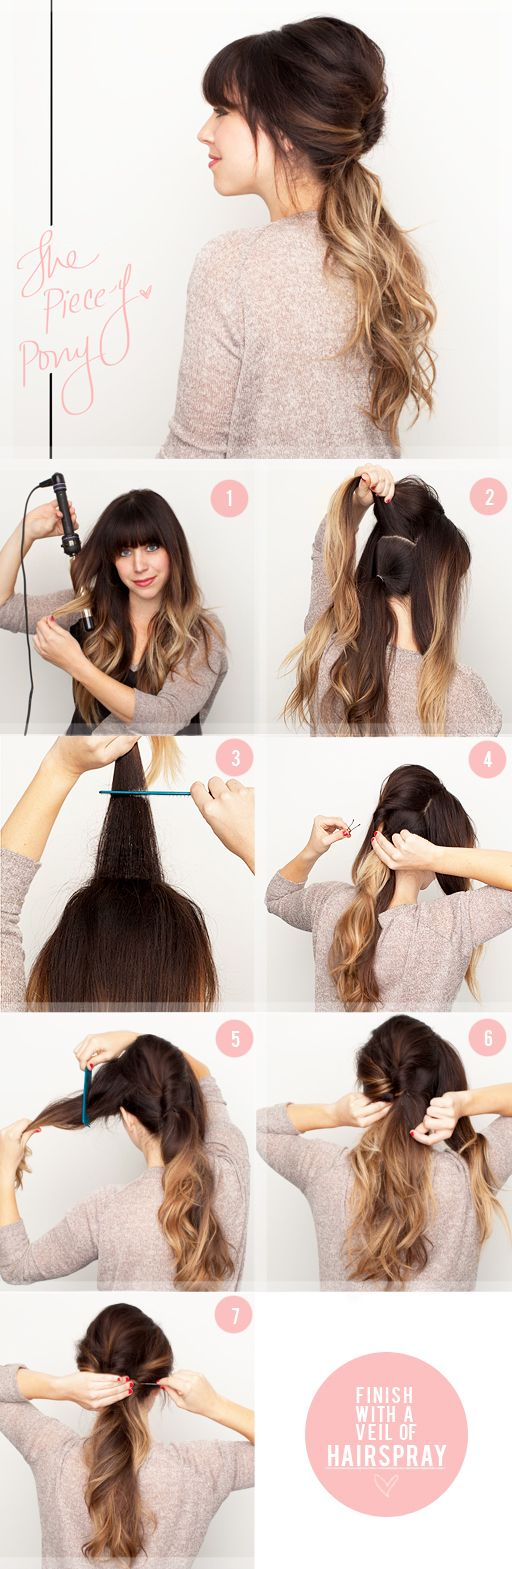 half up and half down hair idea.